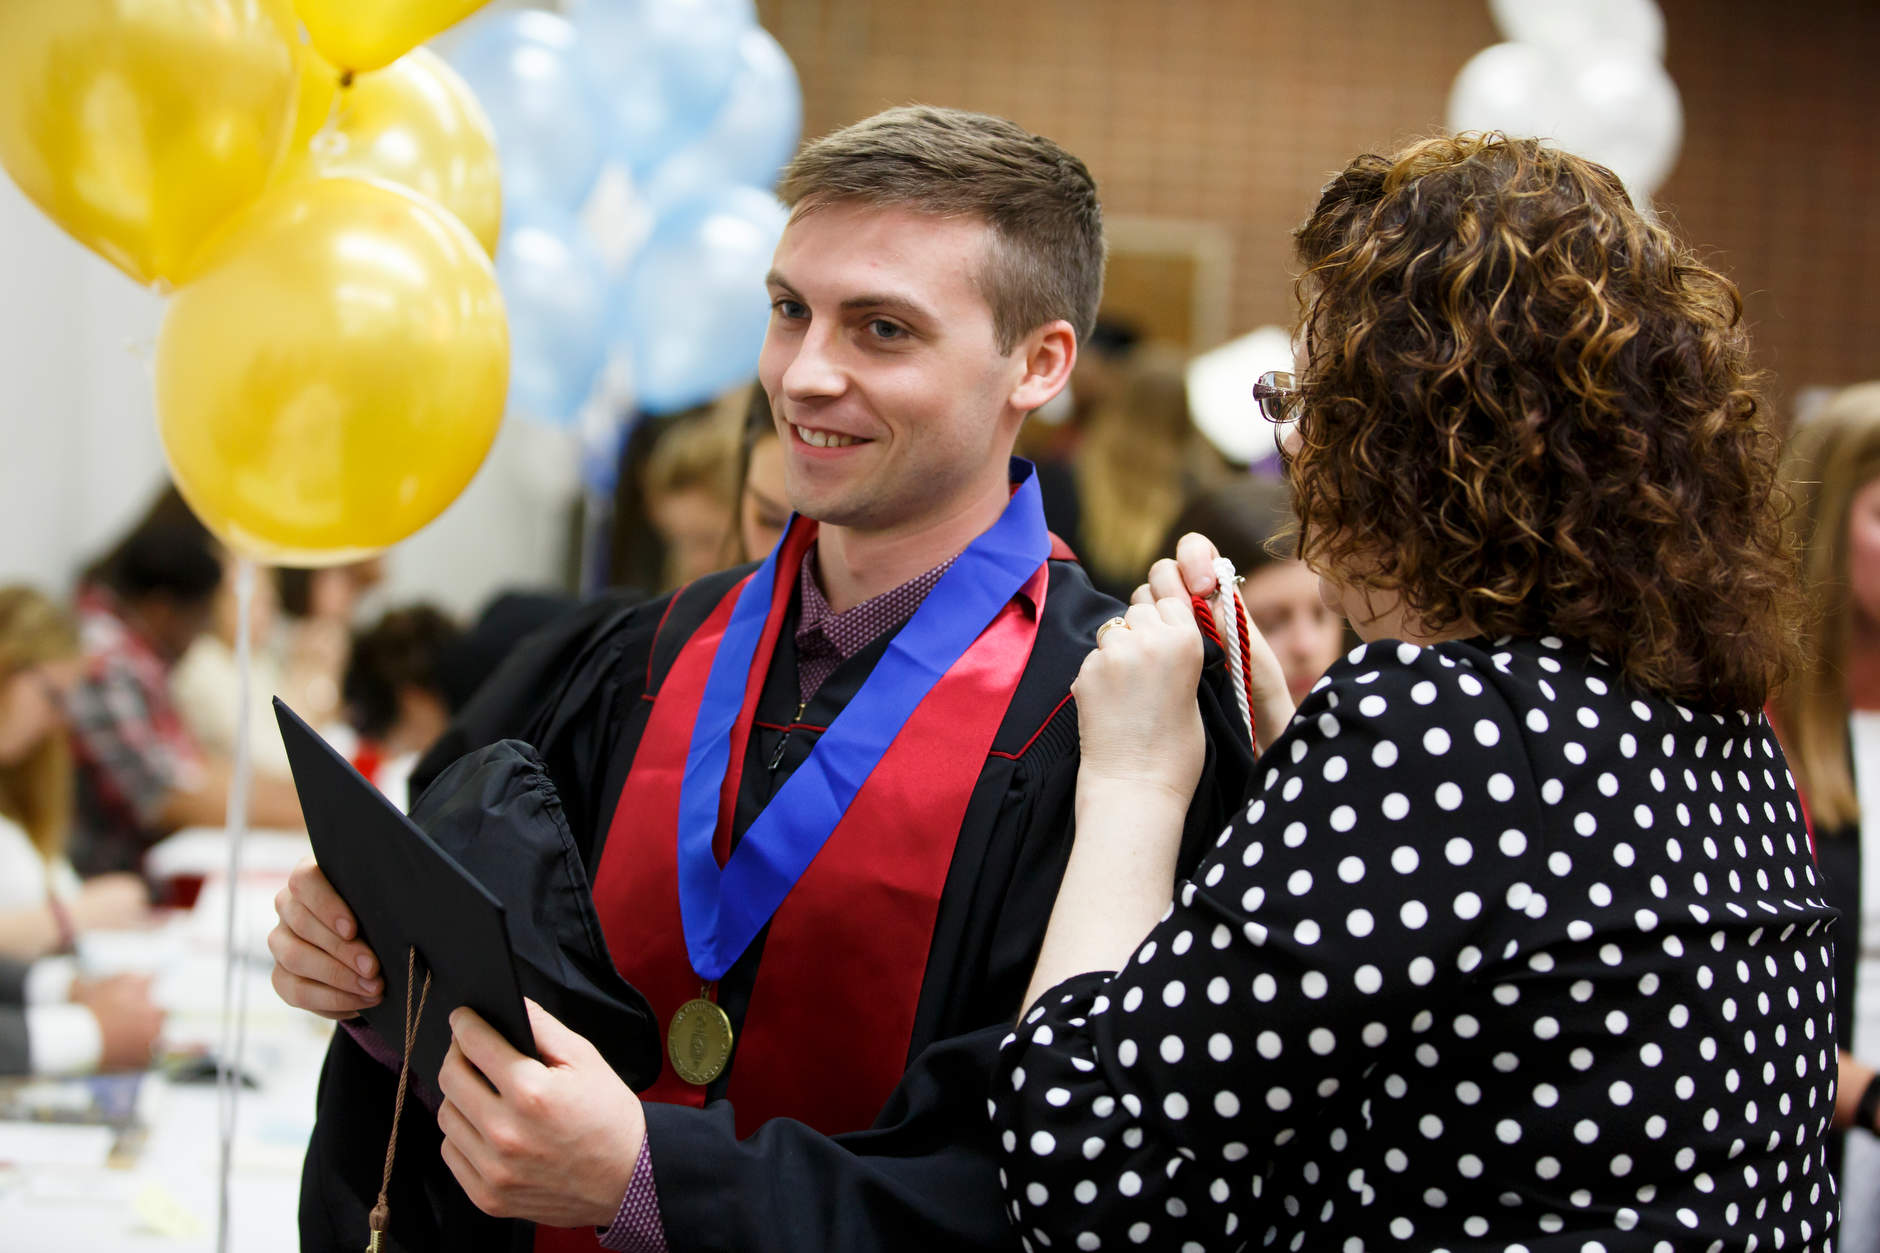 A volunteer assists a graduate with chords before the IU Northwest Commencement at the Genesis Convention Center on Thursday, May 9, 2019. (James Brosher/Indiana University)